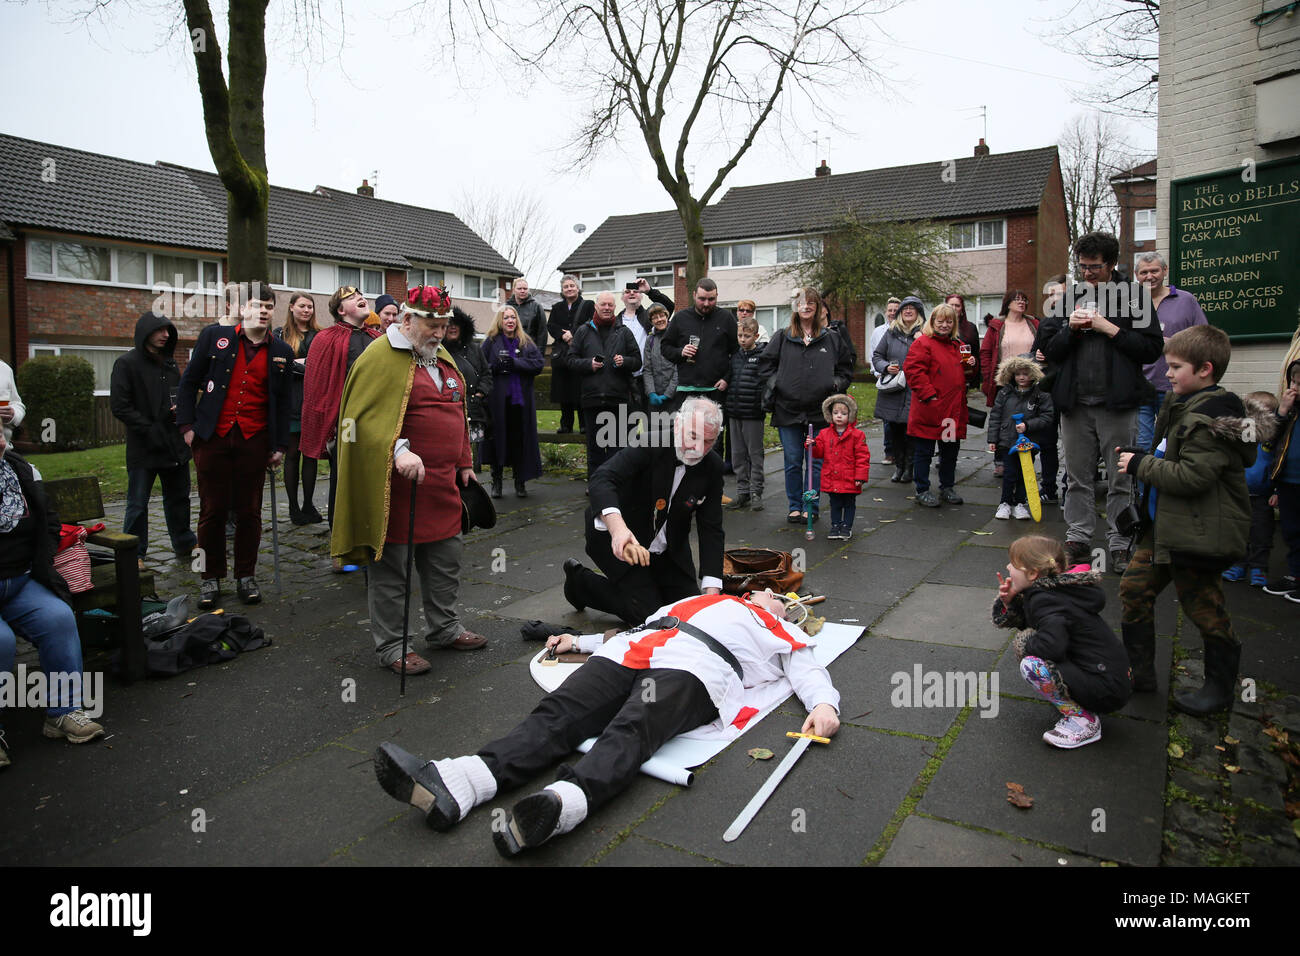 Middleton, UK, 2 April 2018. Crowds gather on Easter Monday to watch the Pace Egg play as it tours Pubs throughout Middleton, 2nd April, 2018 (C)Barbara Cook/Alamy Live News Stock Photo